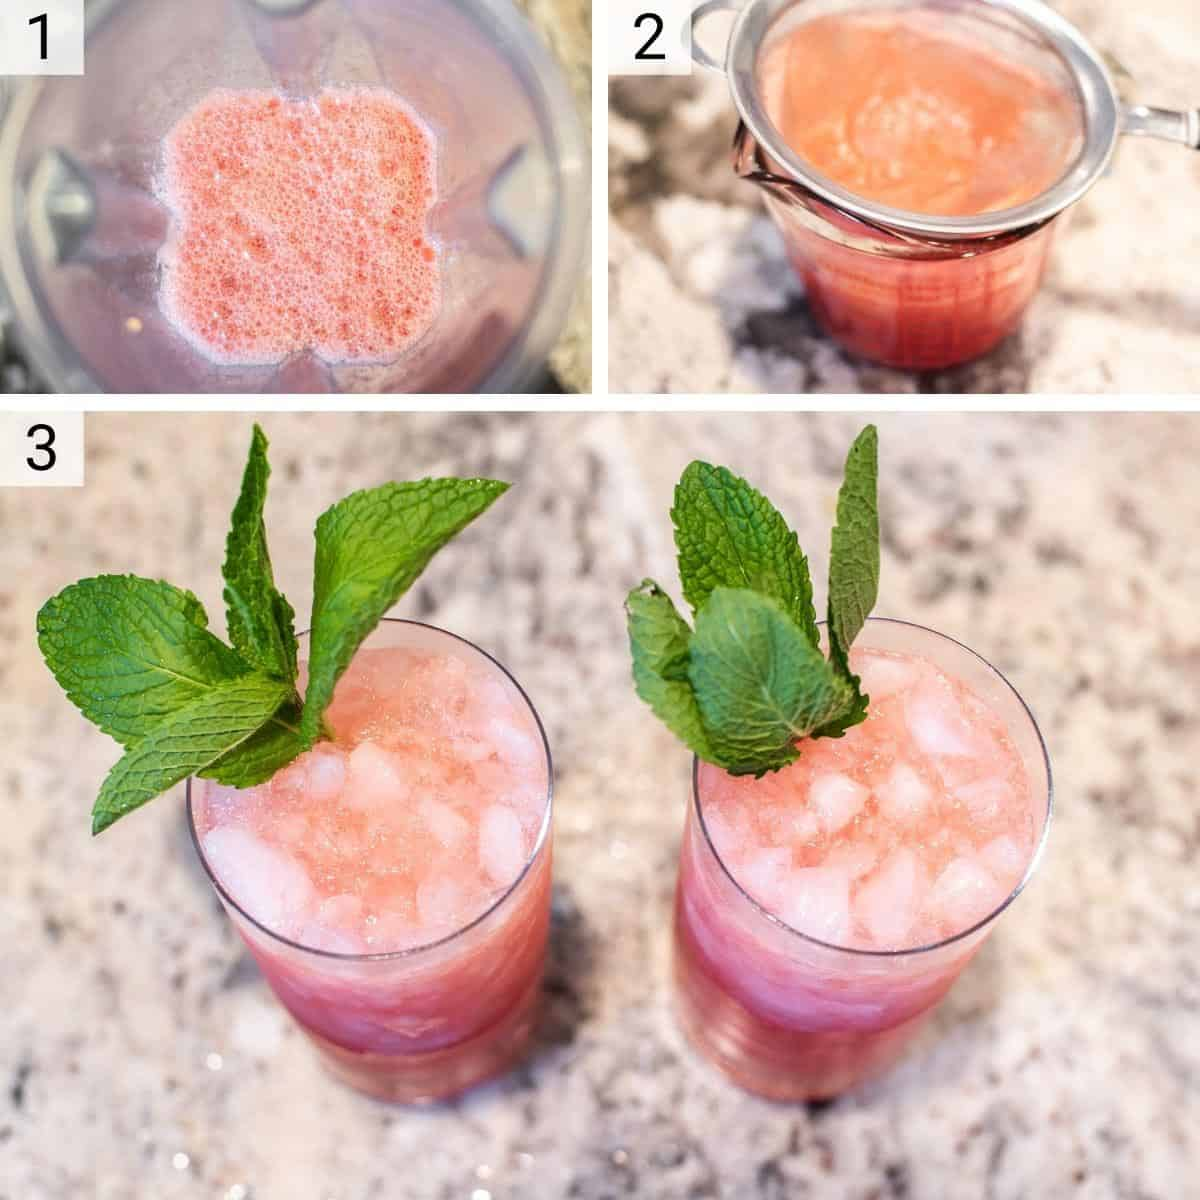 process shots of blending watermelon before pouring through sieve and adding to glass with other ingredients